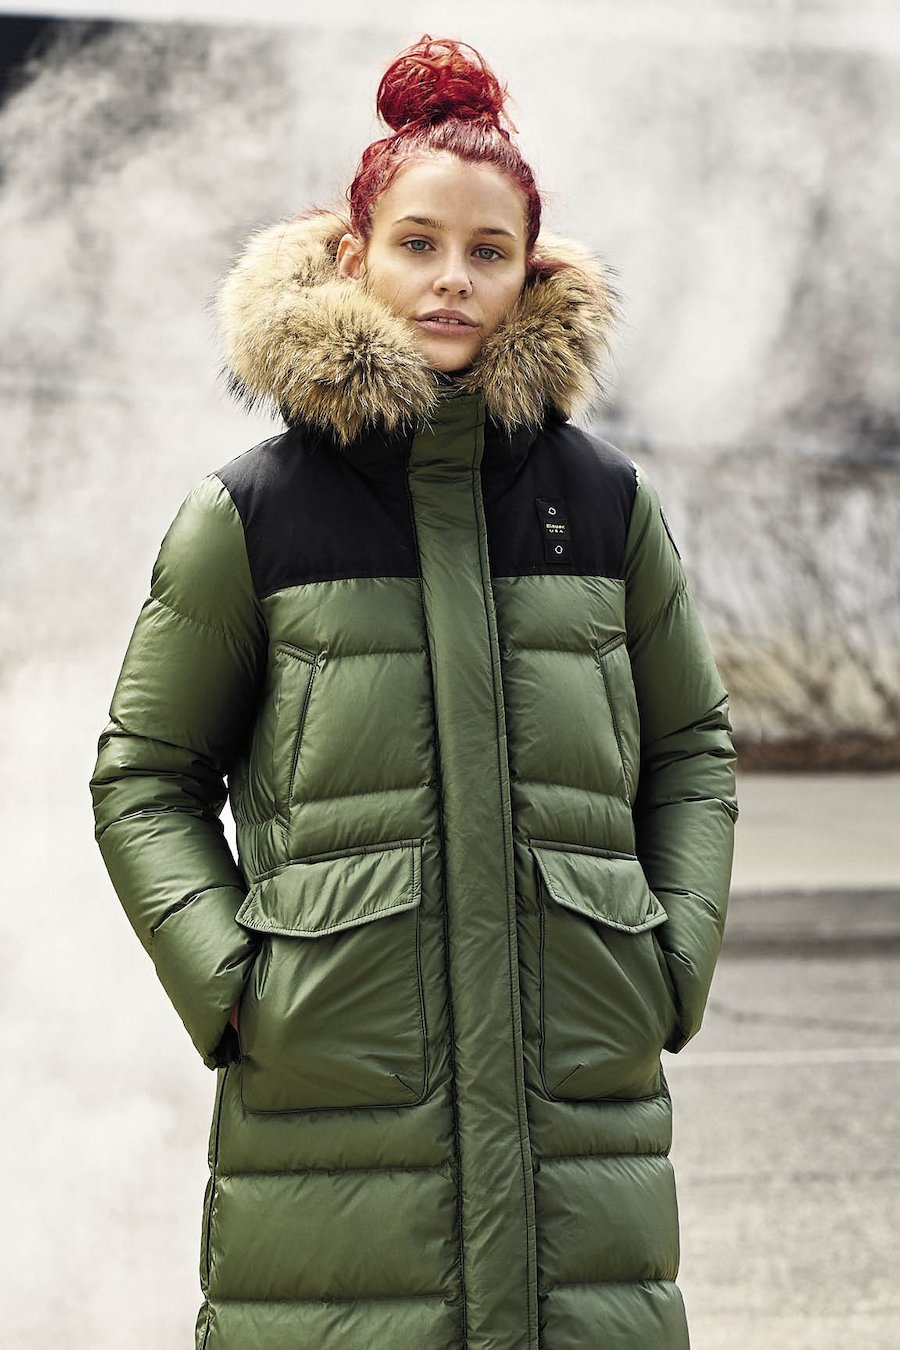 One of the FW18-19 collection highlights is the Blauer Down Collection. The down jackets for men and women present four different types of fill.